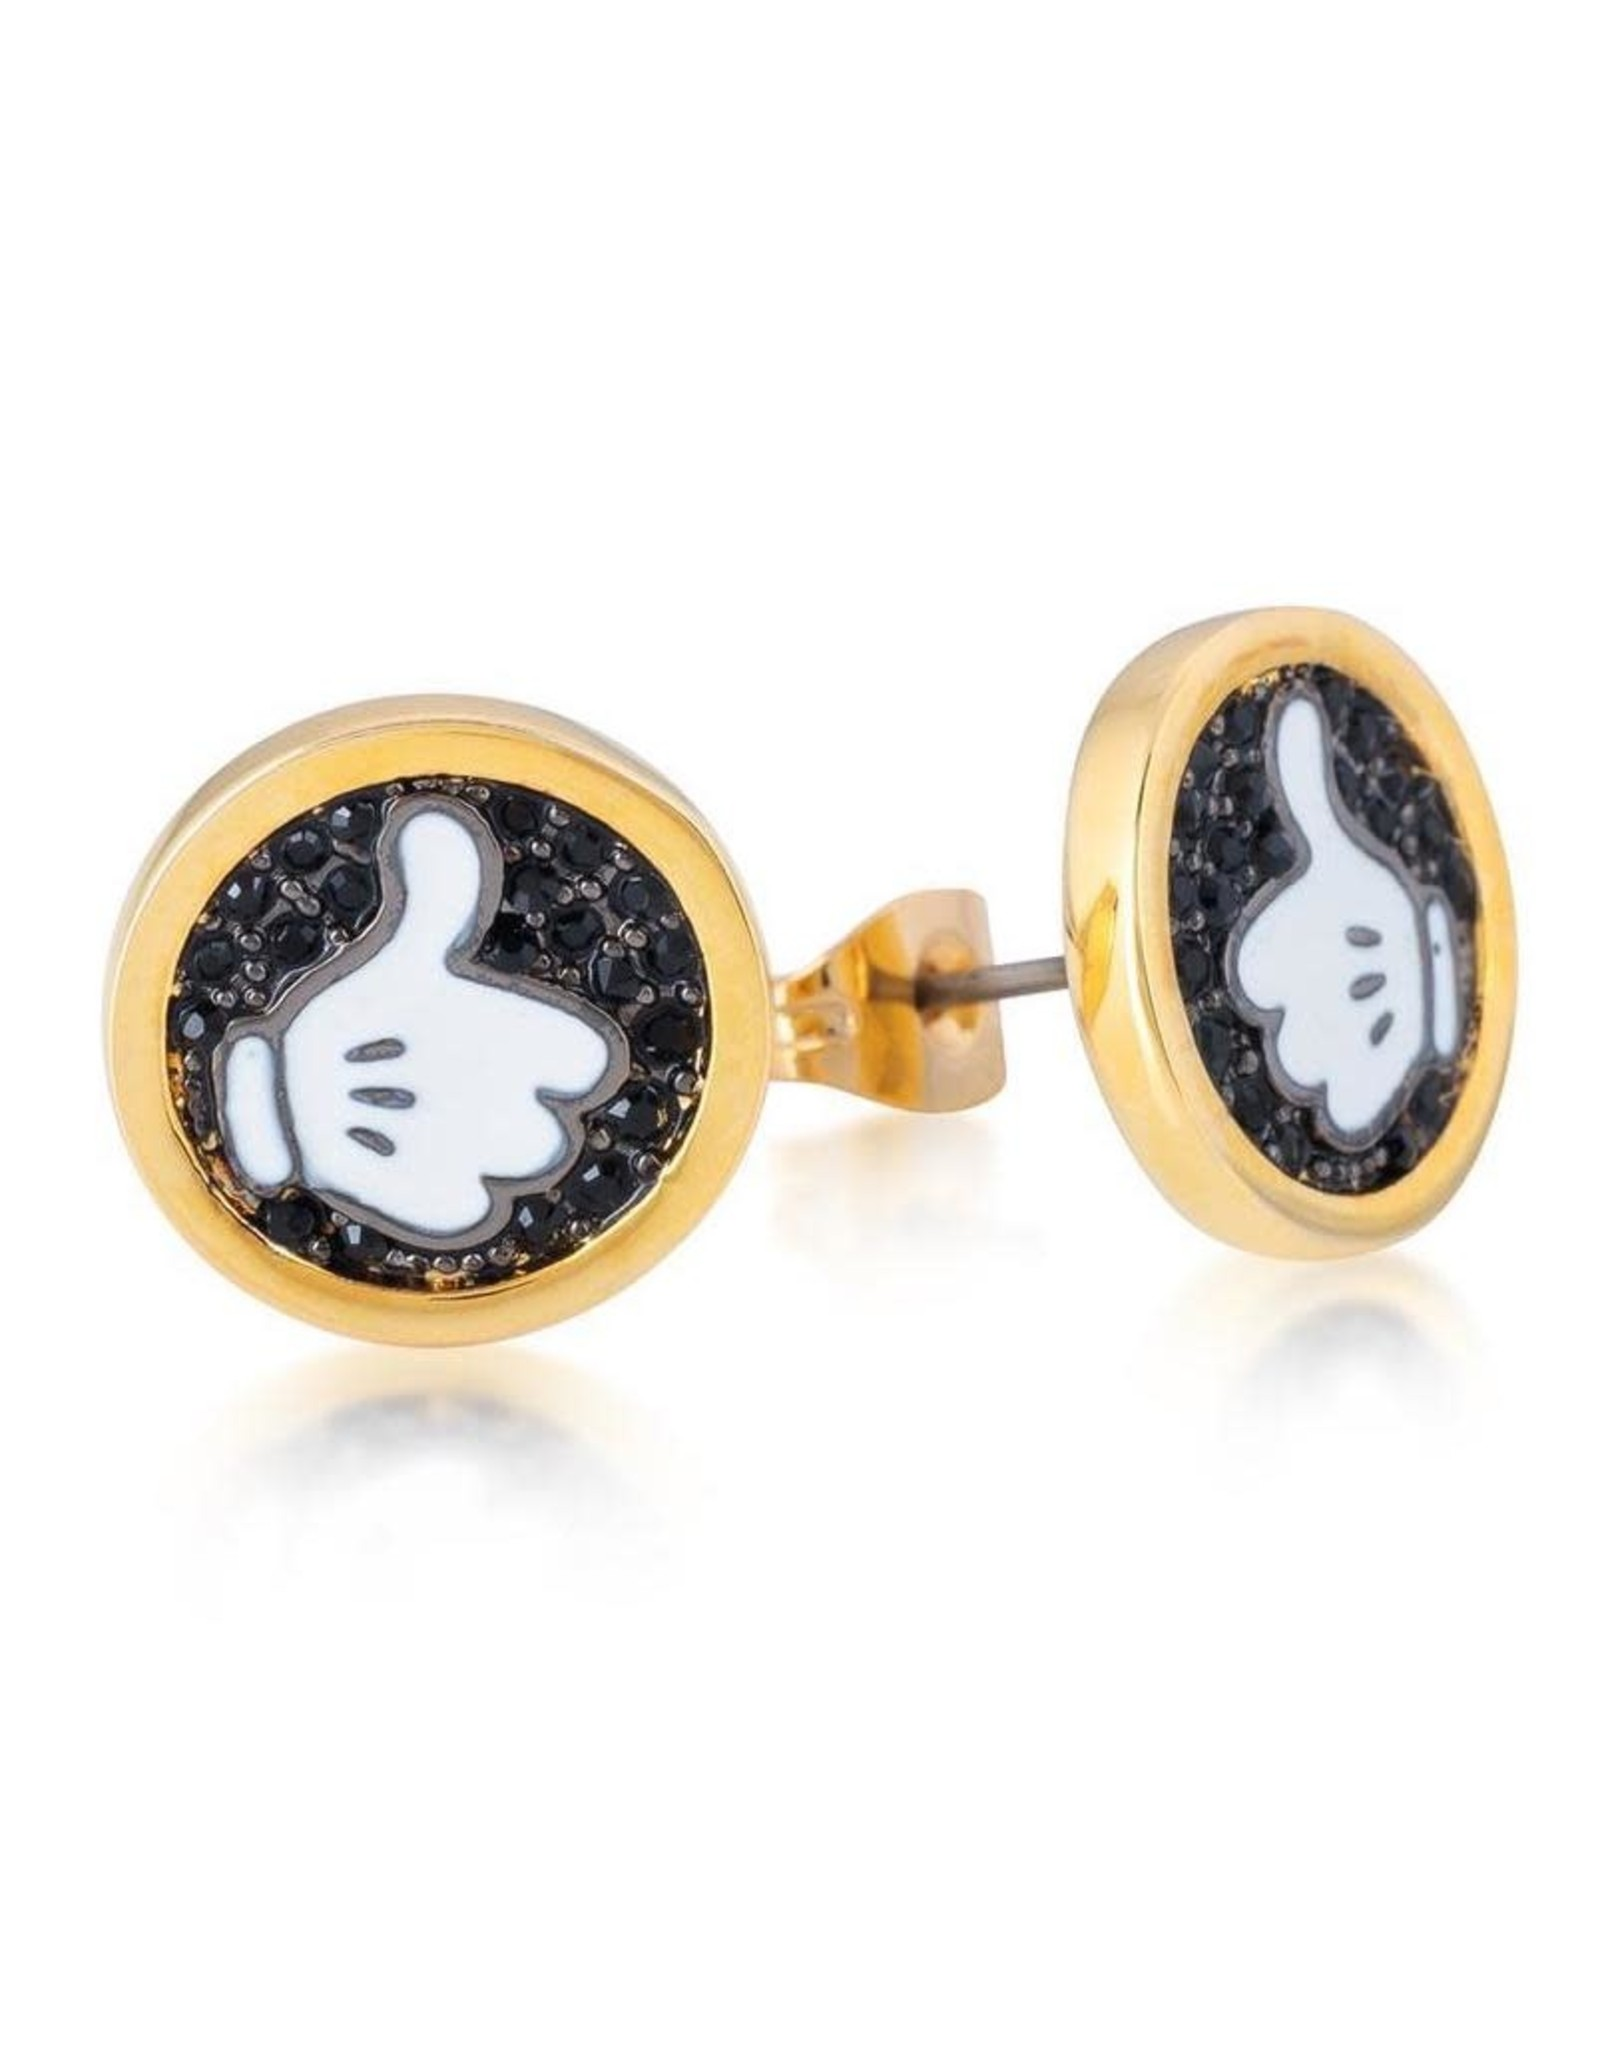 DISNEY MICKEY MOUSE - Glove Thumbs Up Stud Earrings 'Gold Plated'